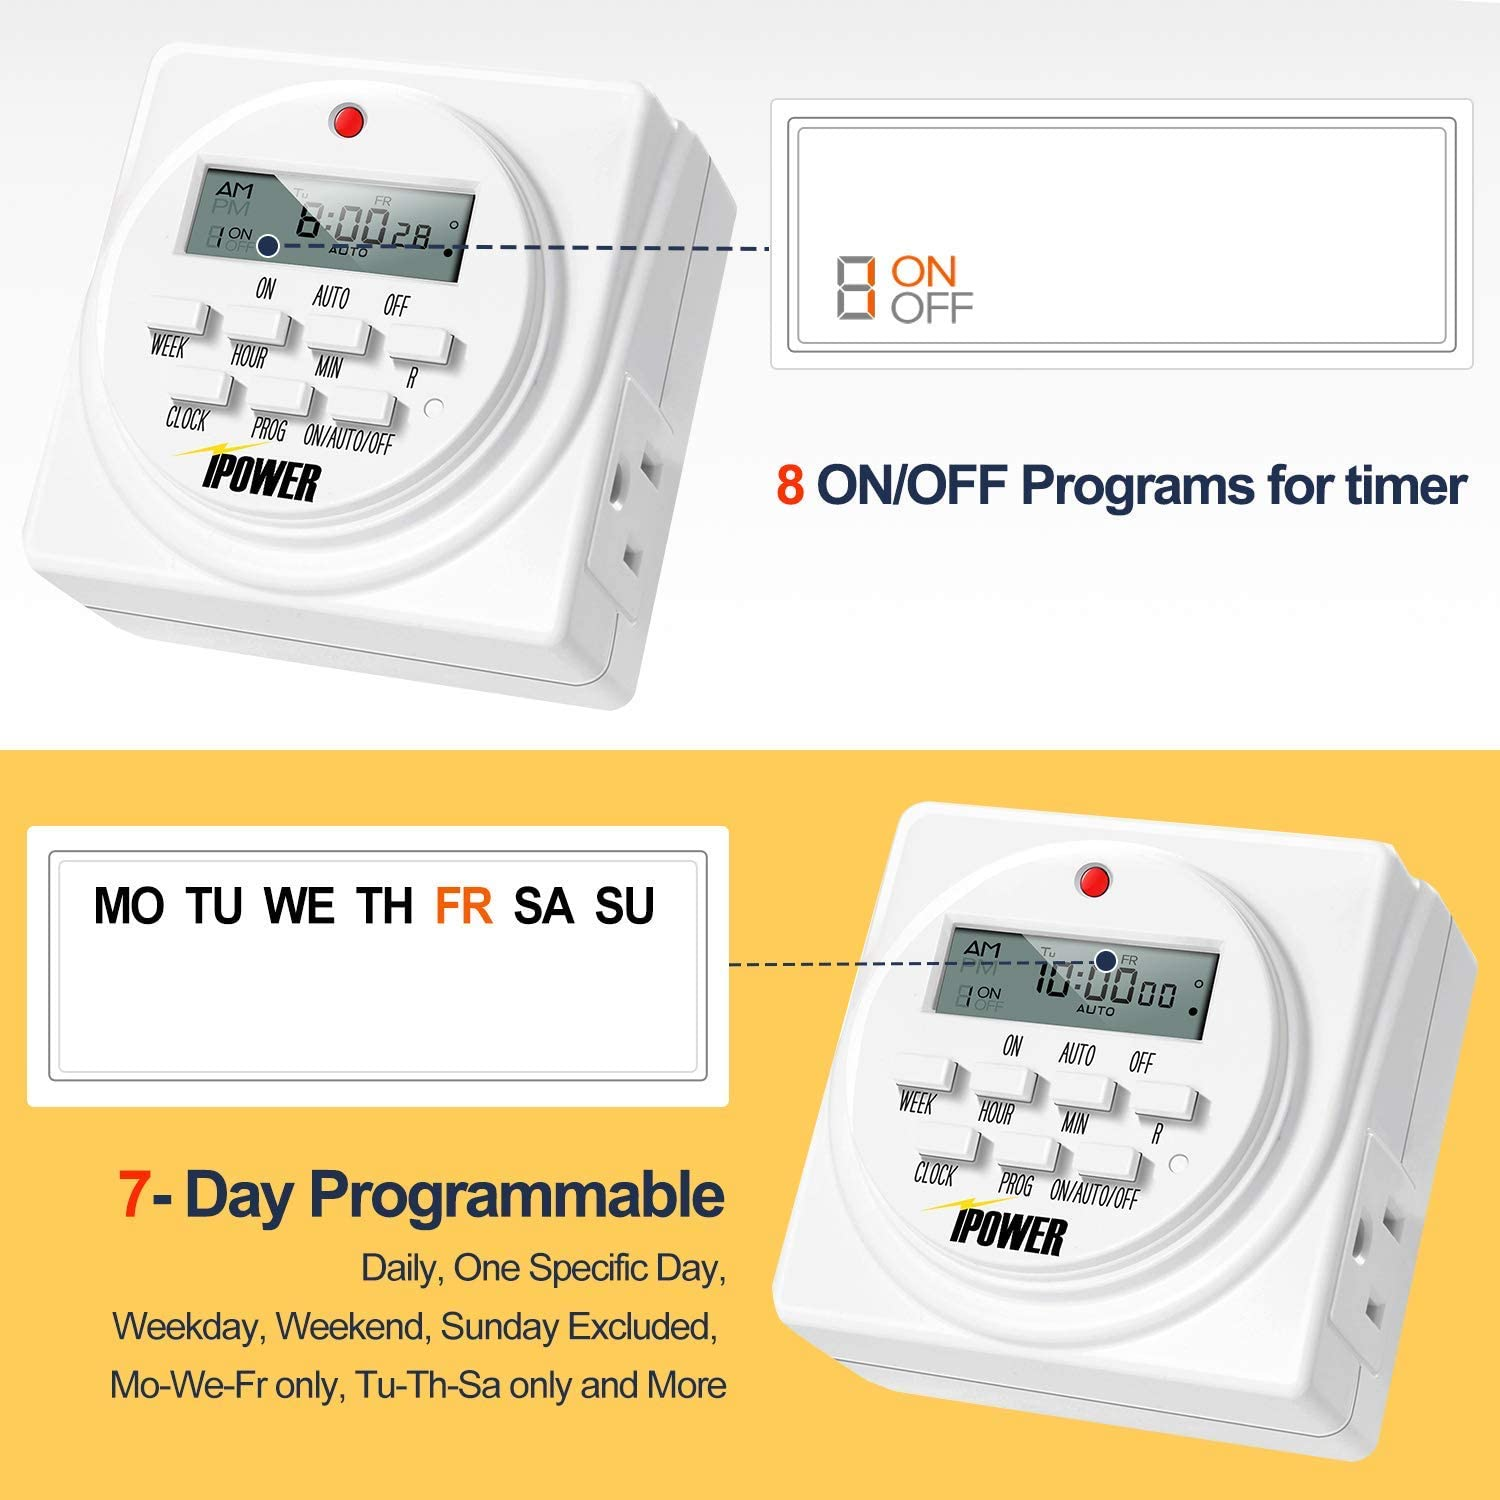 iPower GLTIMEDWEEKX2 Digital Electric Timer 2 Pack White Tools ...